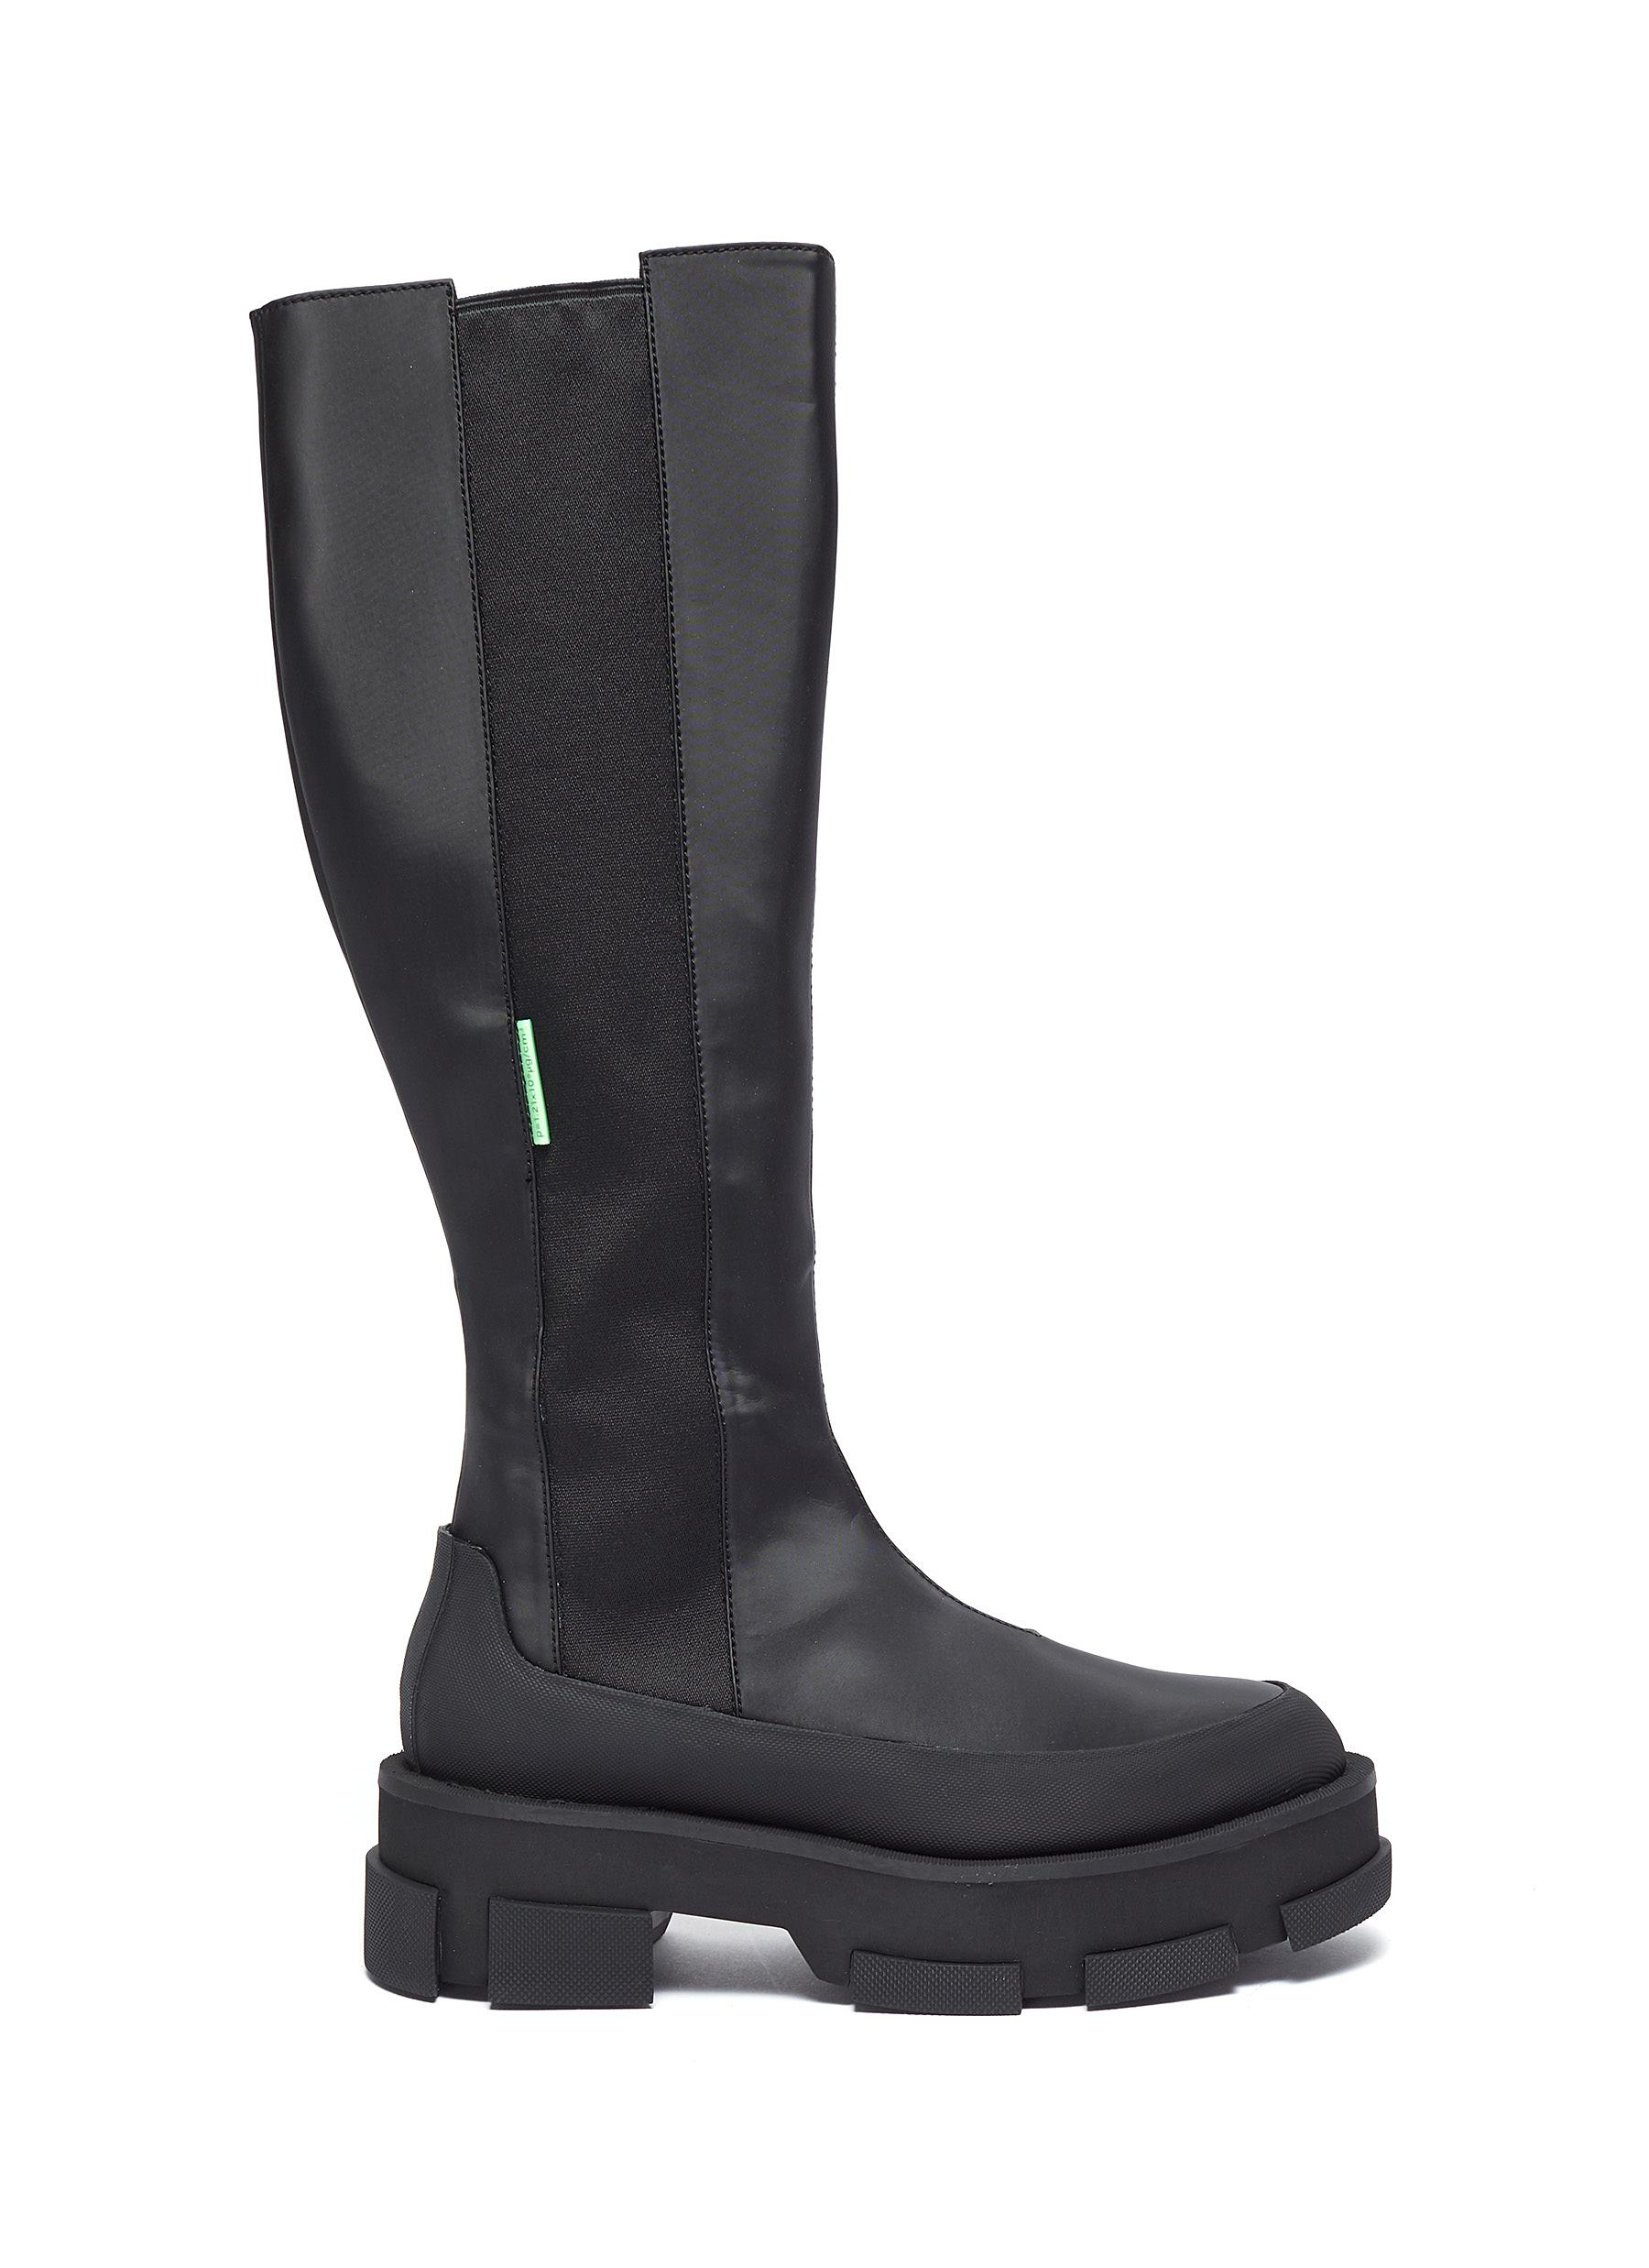 Gao' chunky sole stretch leather knee high boots